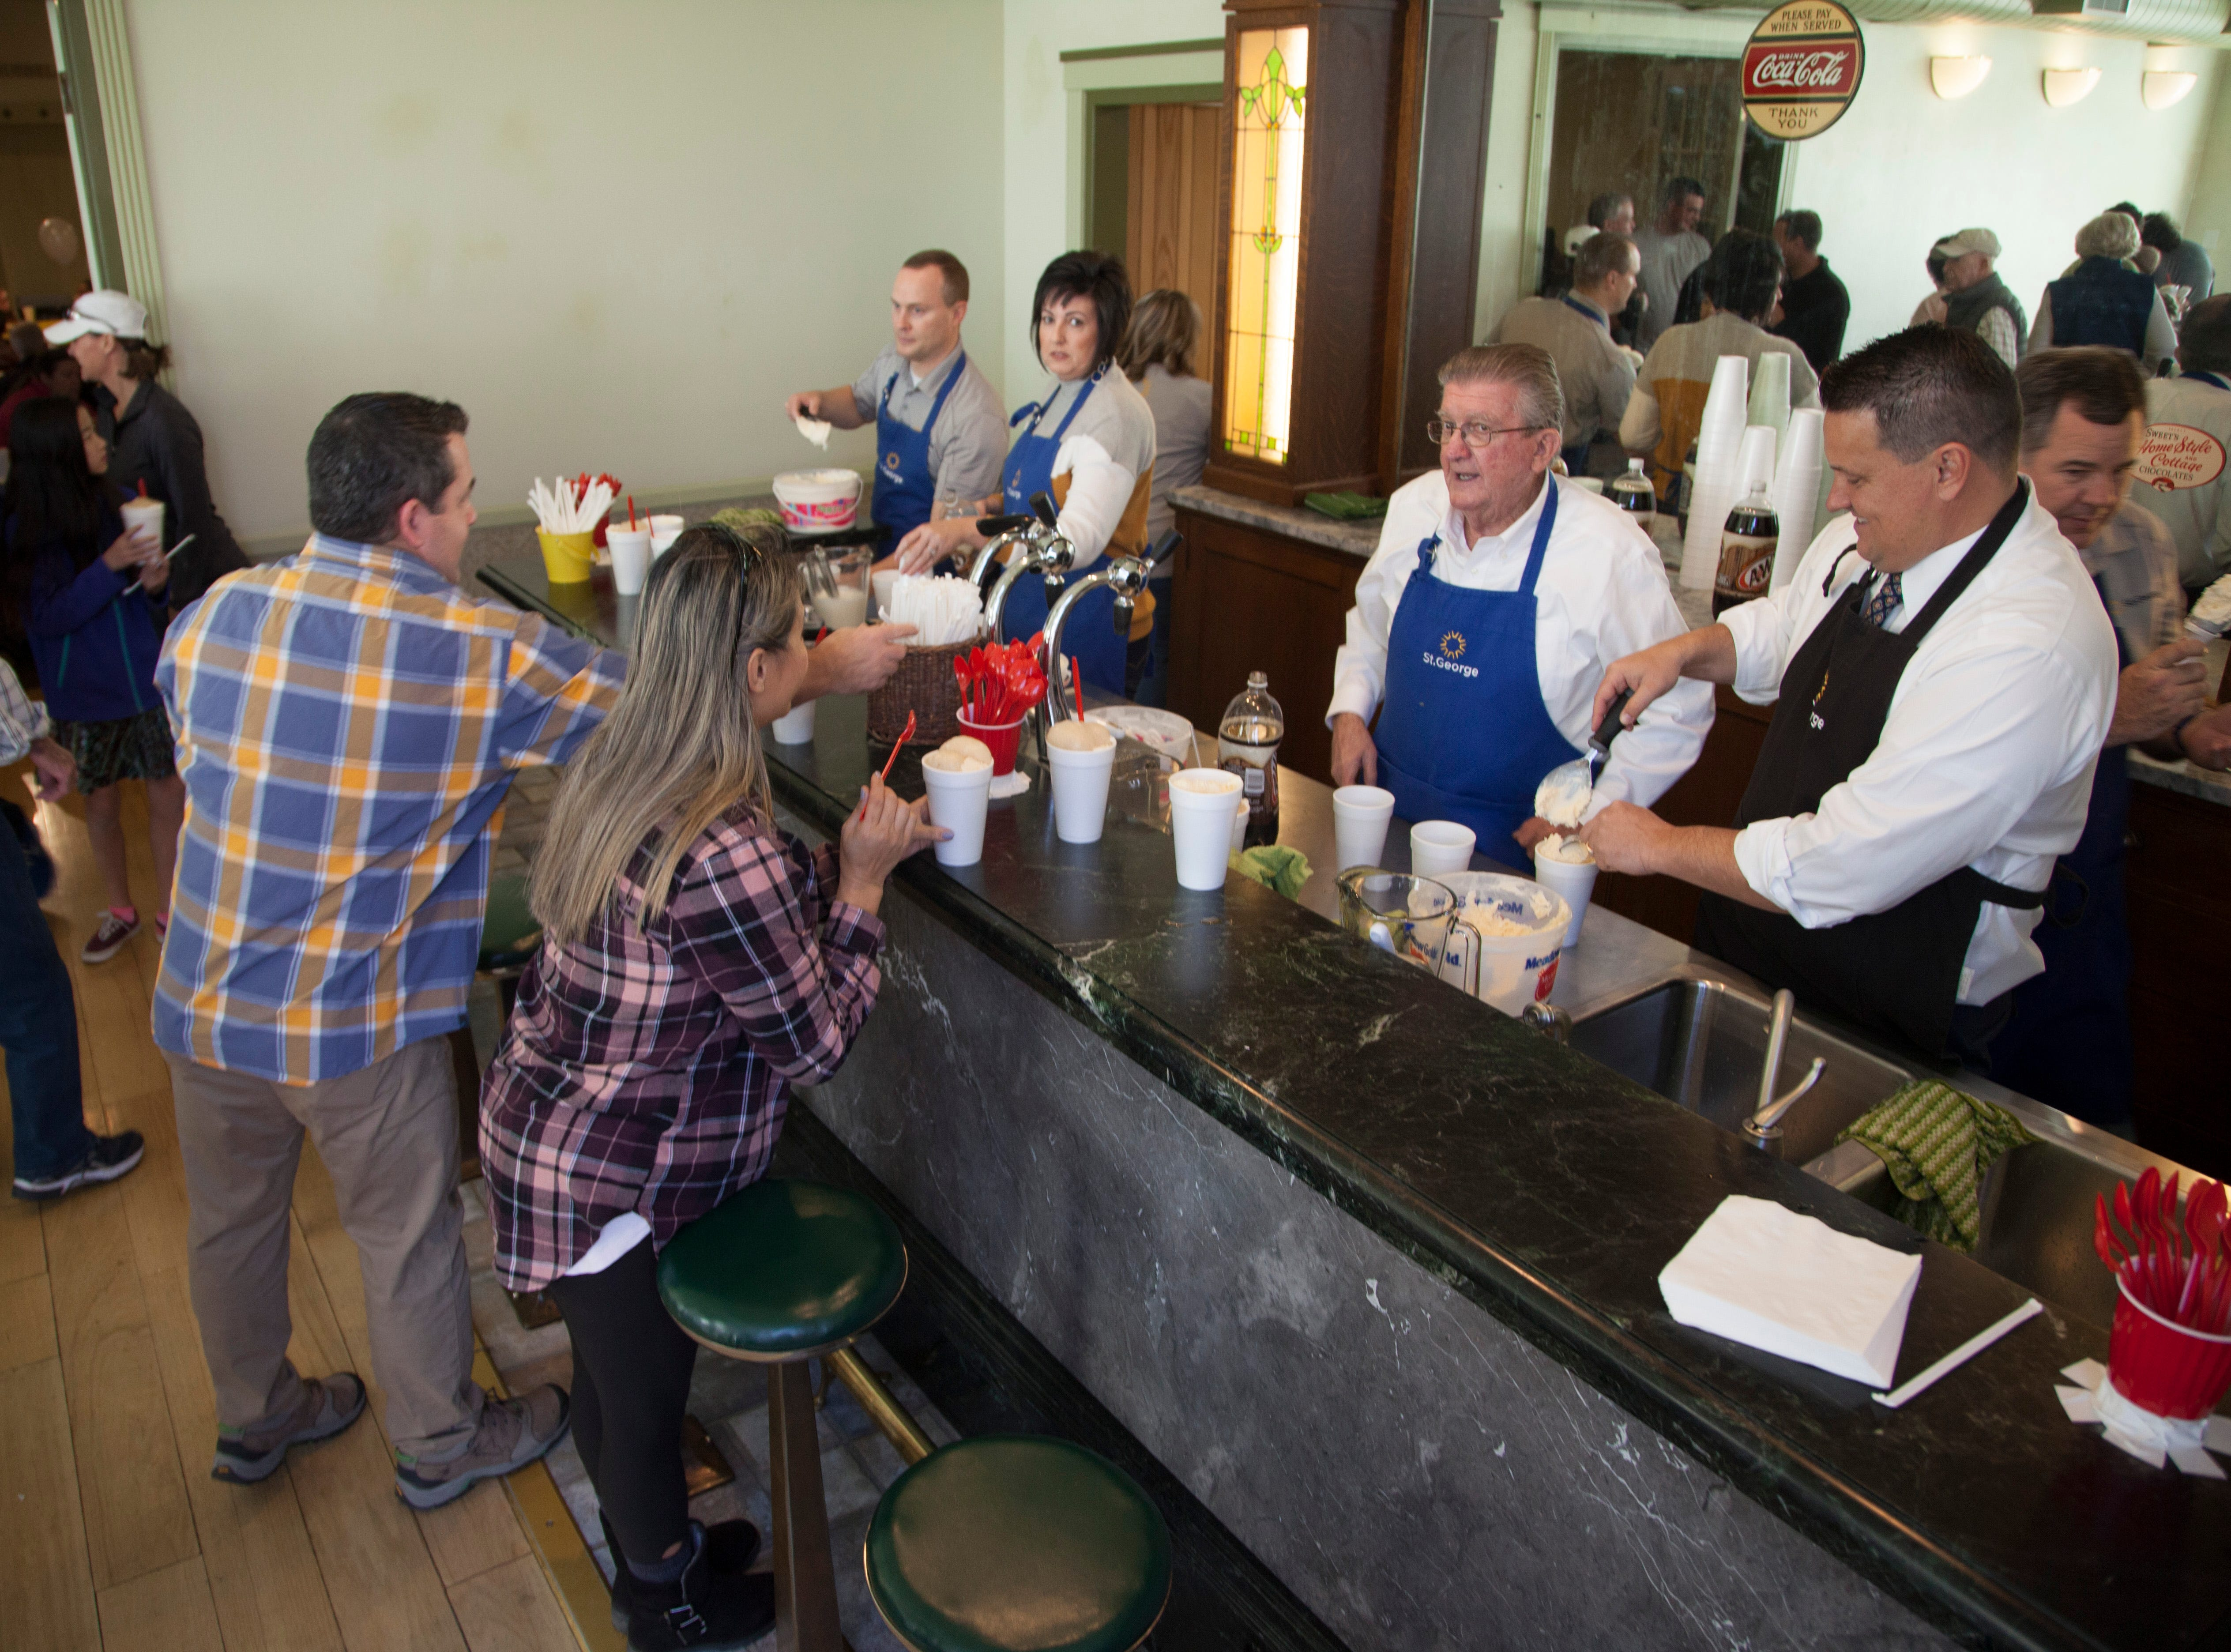 St. George City leaders serve cookies and root beer floats at the St. George Social Hall to celebrate the 157th year since the city was established Saturday, Jan. 12, 2019.